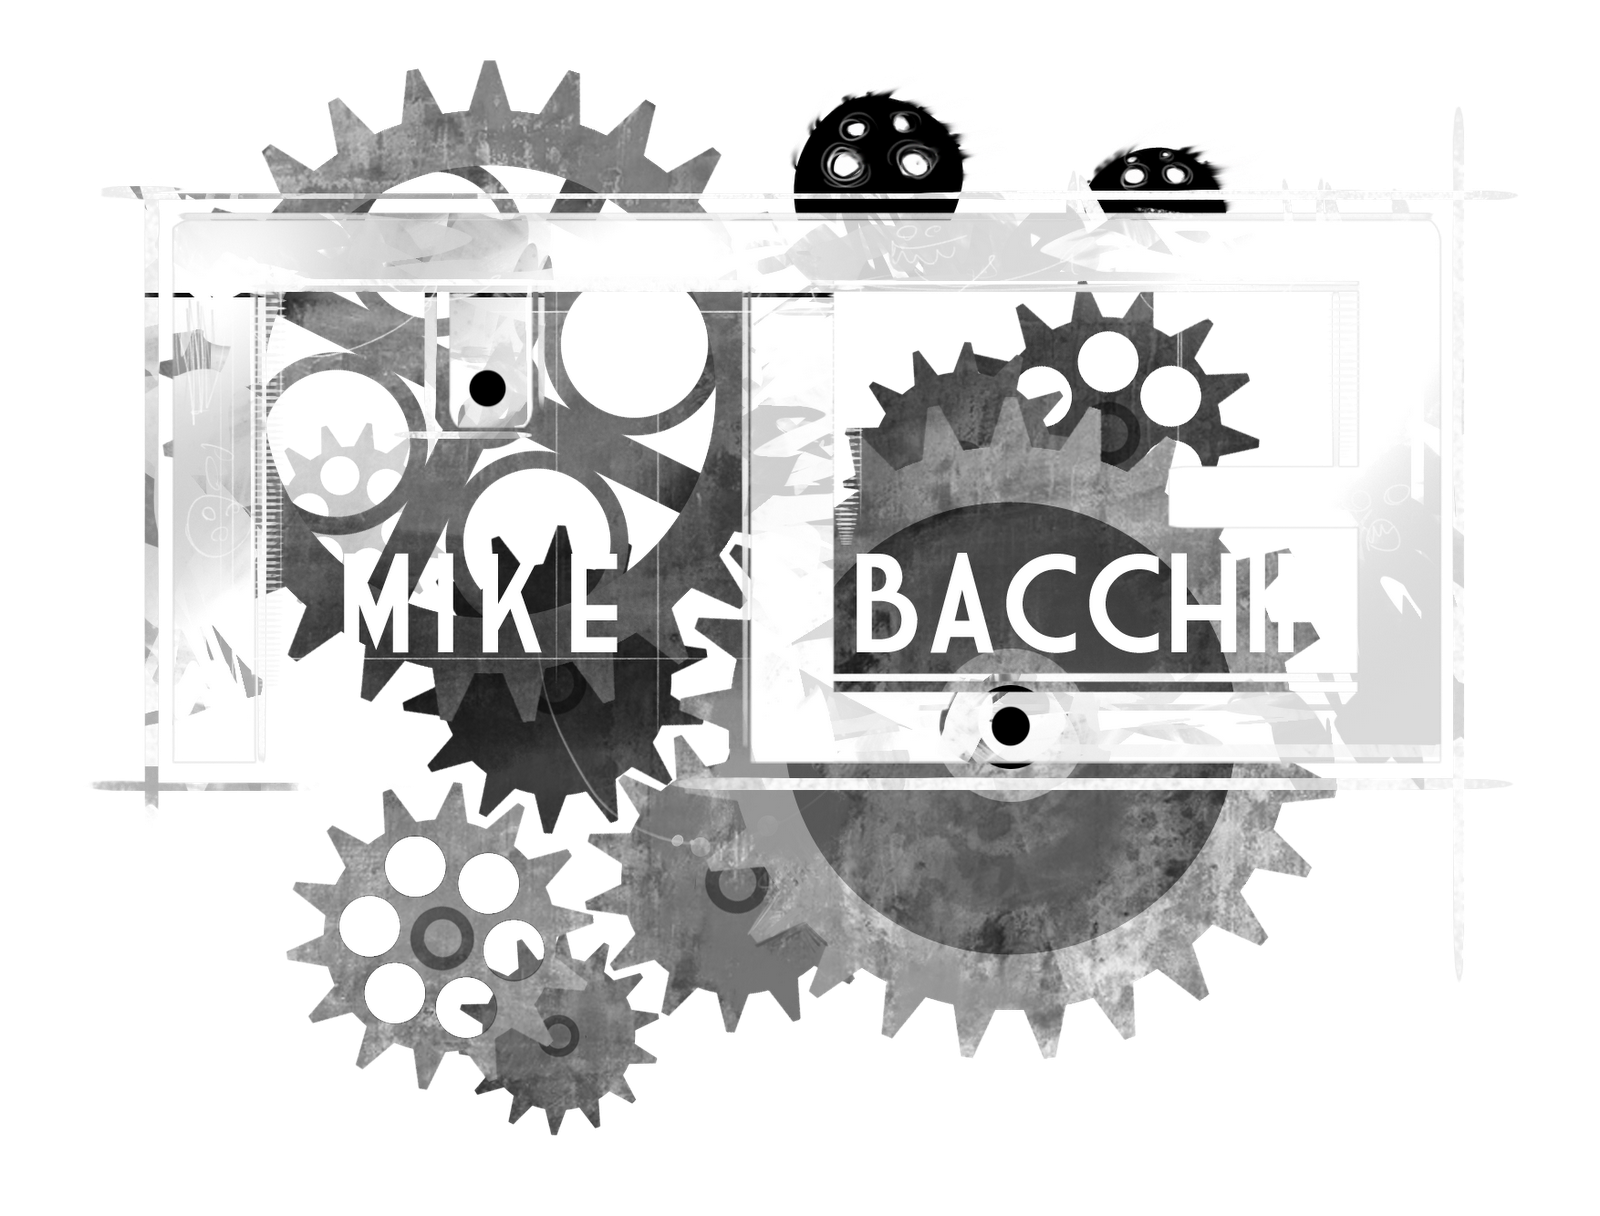 The art of Mike Bacchin